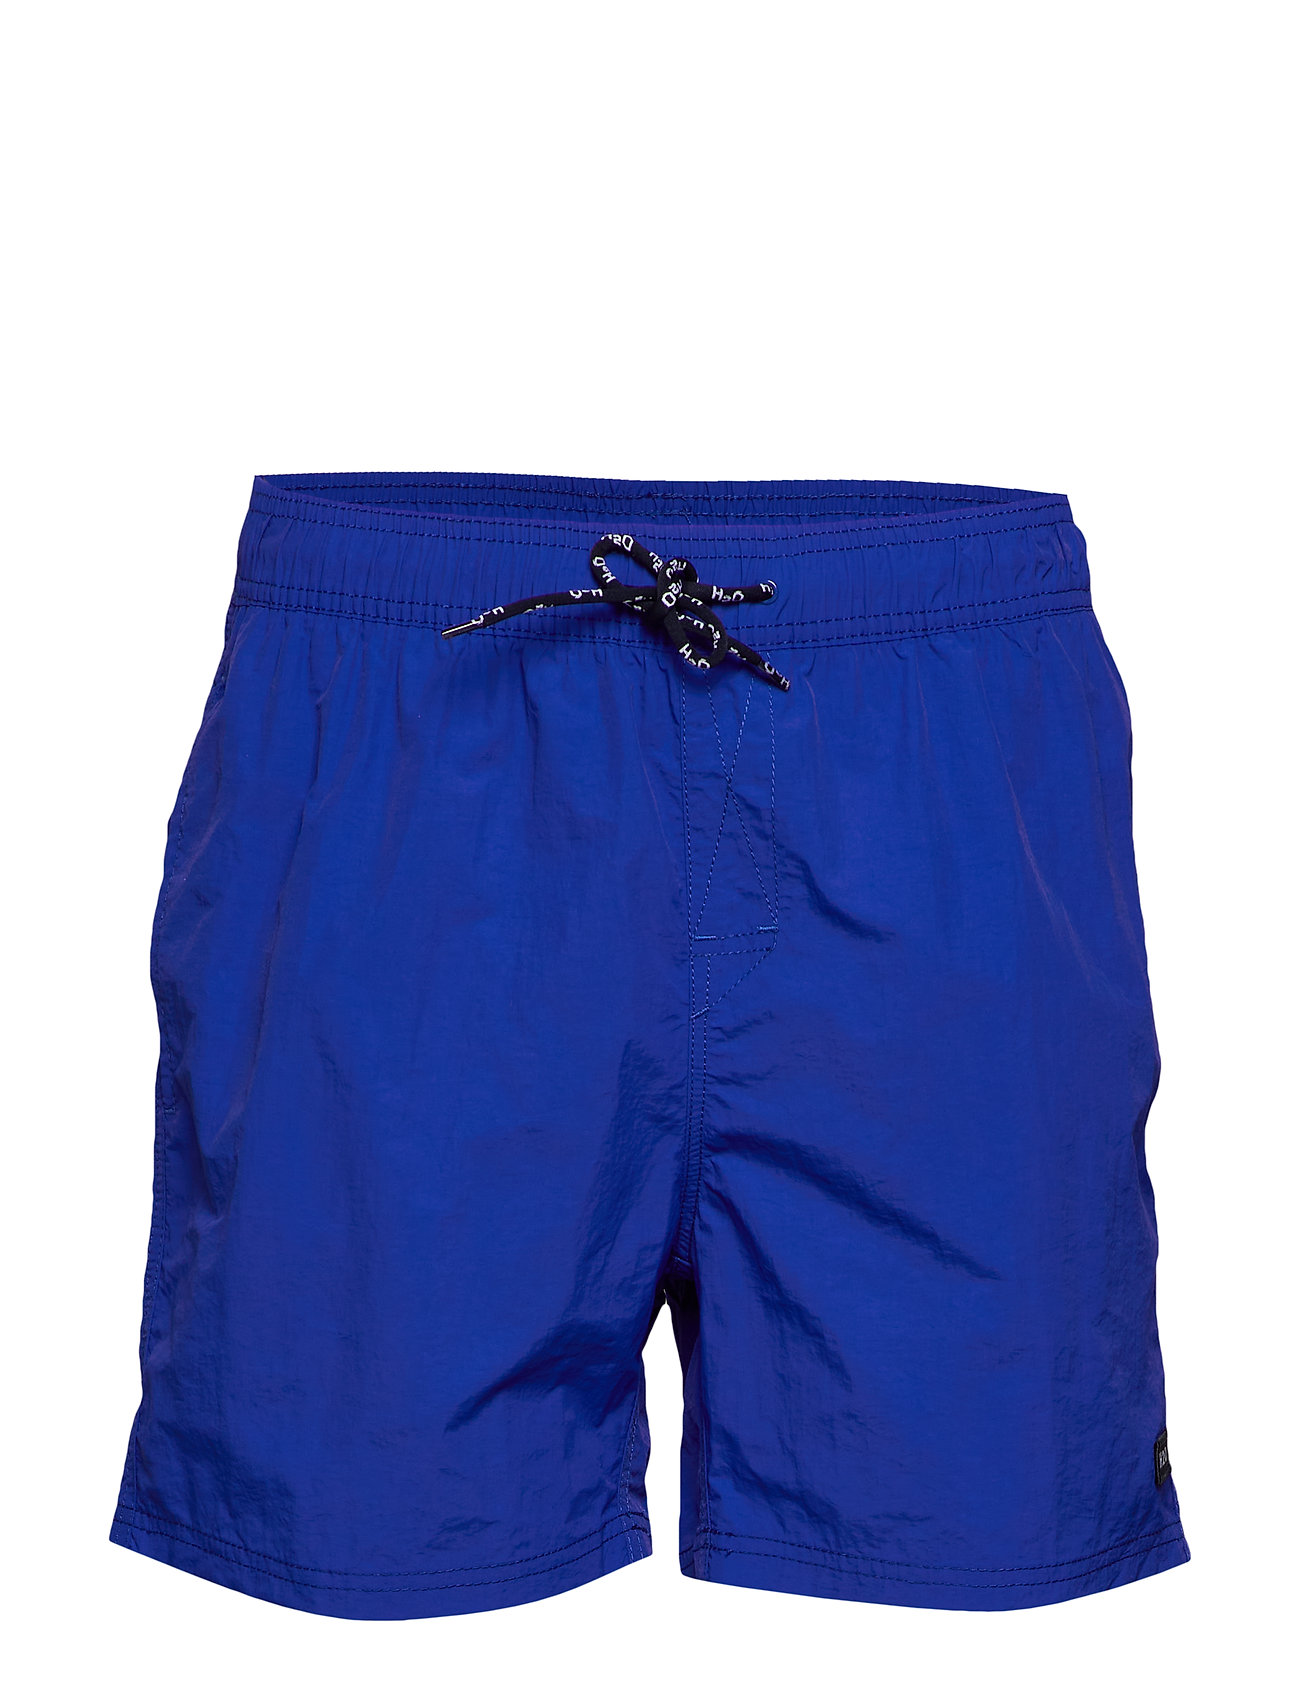 Image of Leisure Swim Shorts Badeshorts Blå H2O (3409851321)